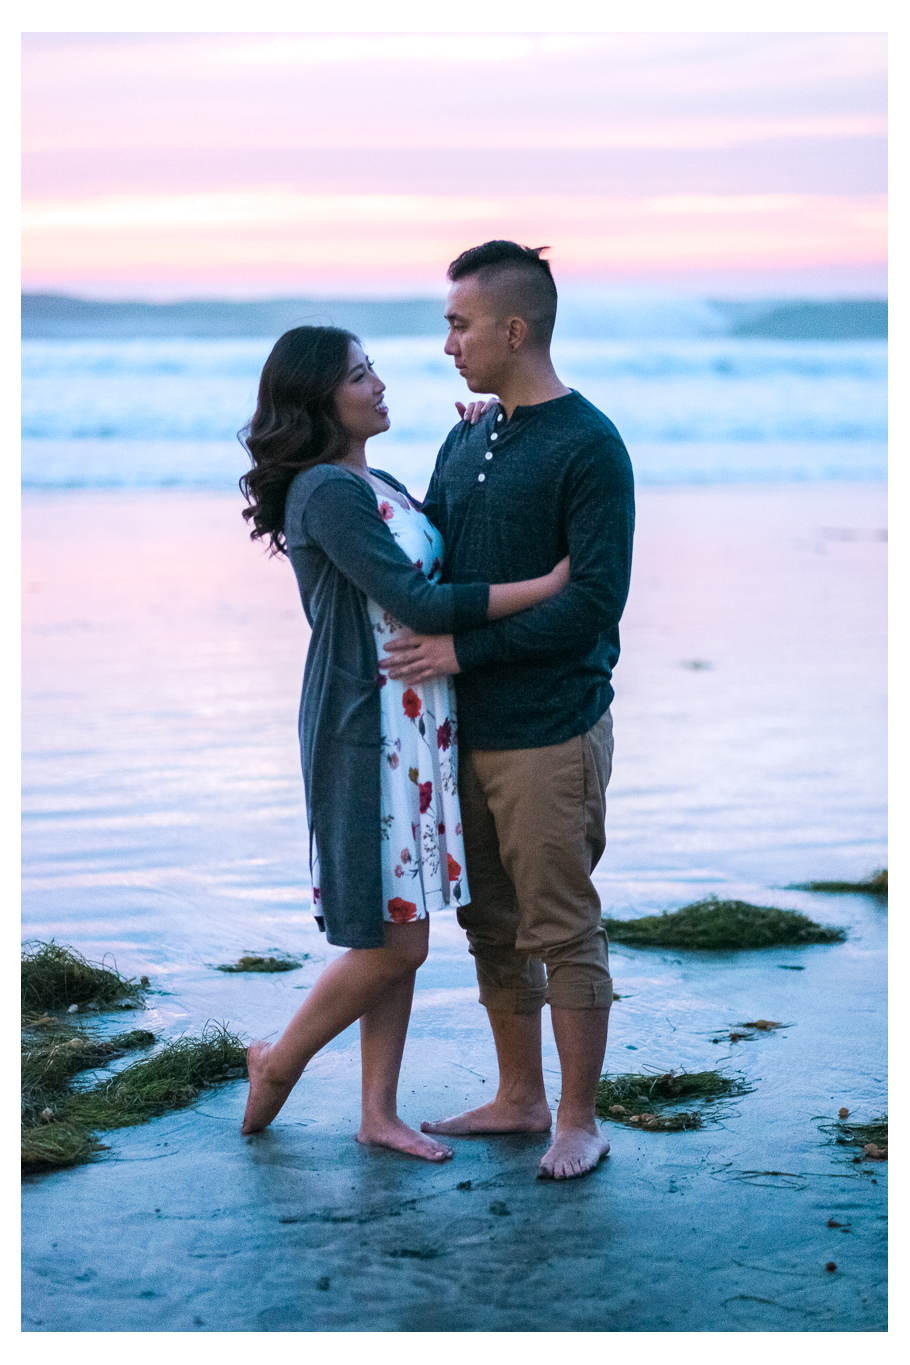 during sunset engagement session at La Jolla shores by the pier